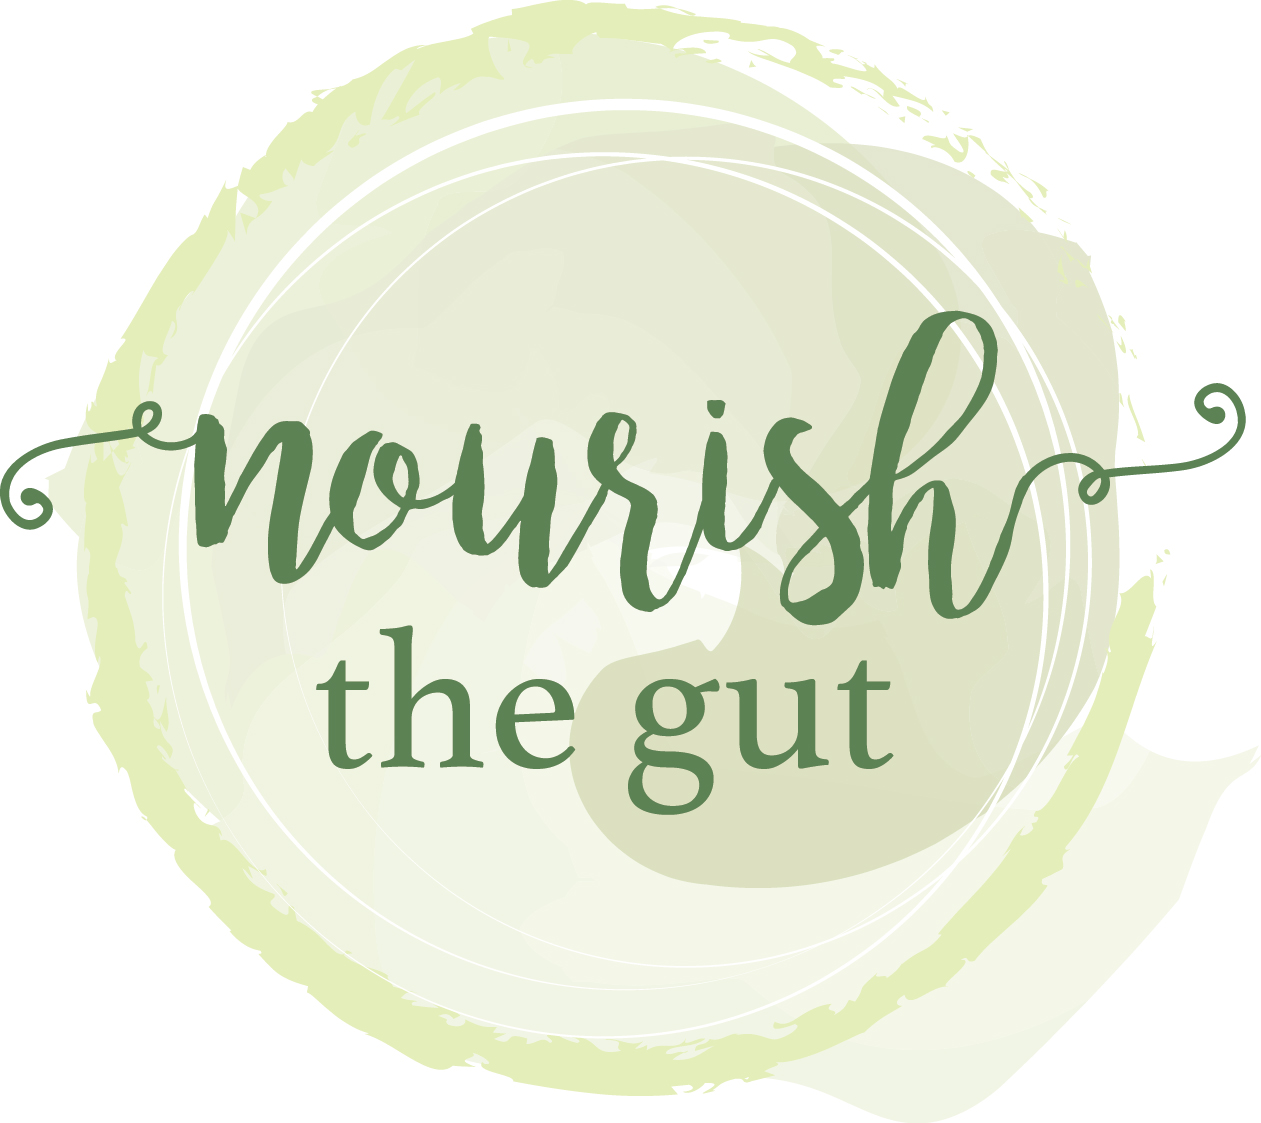 nourish the gut